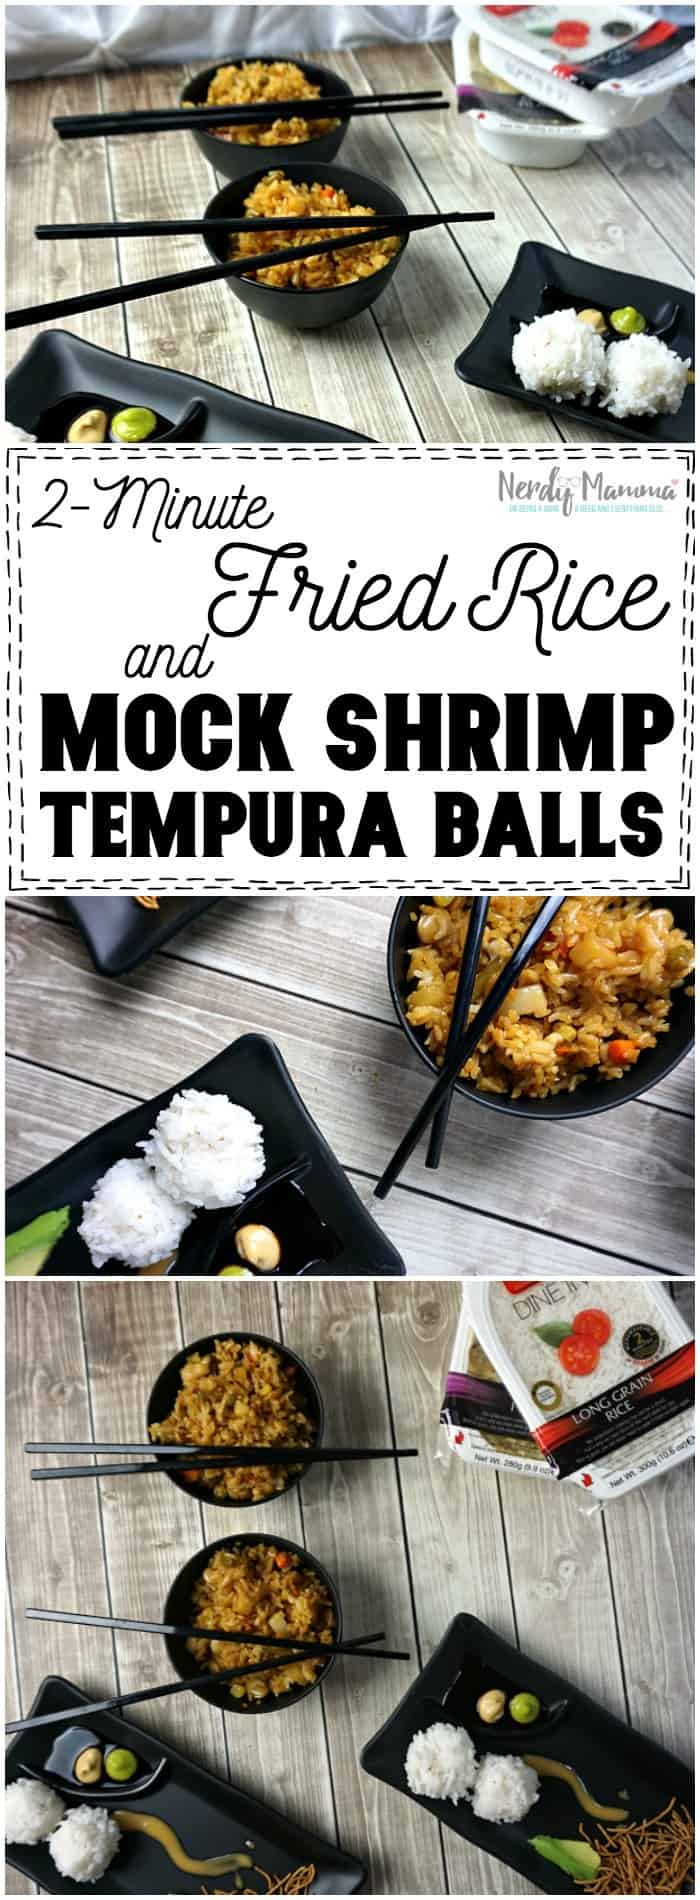 I LOVE this recipe for 2-minute fried rice and these mock shrimp tempura balls. So easy and fast! What's not to love! LOL!